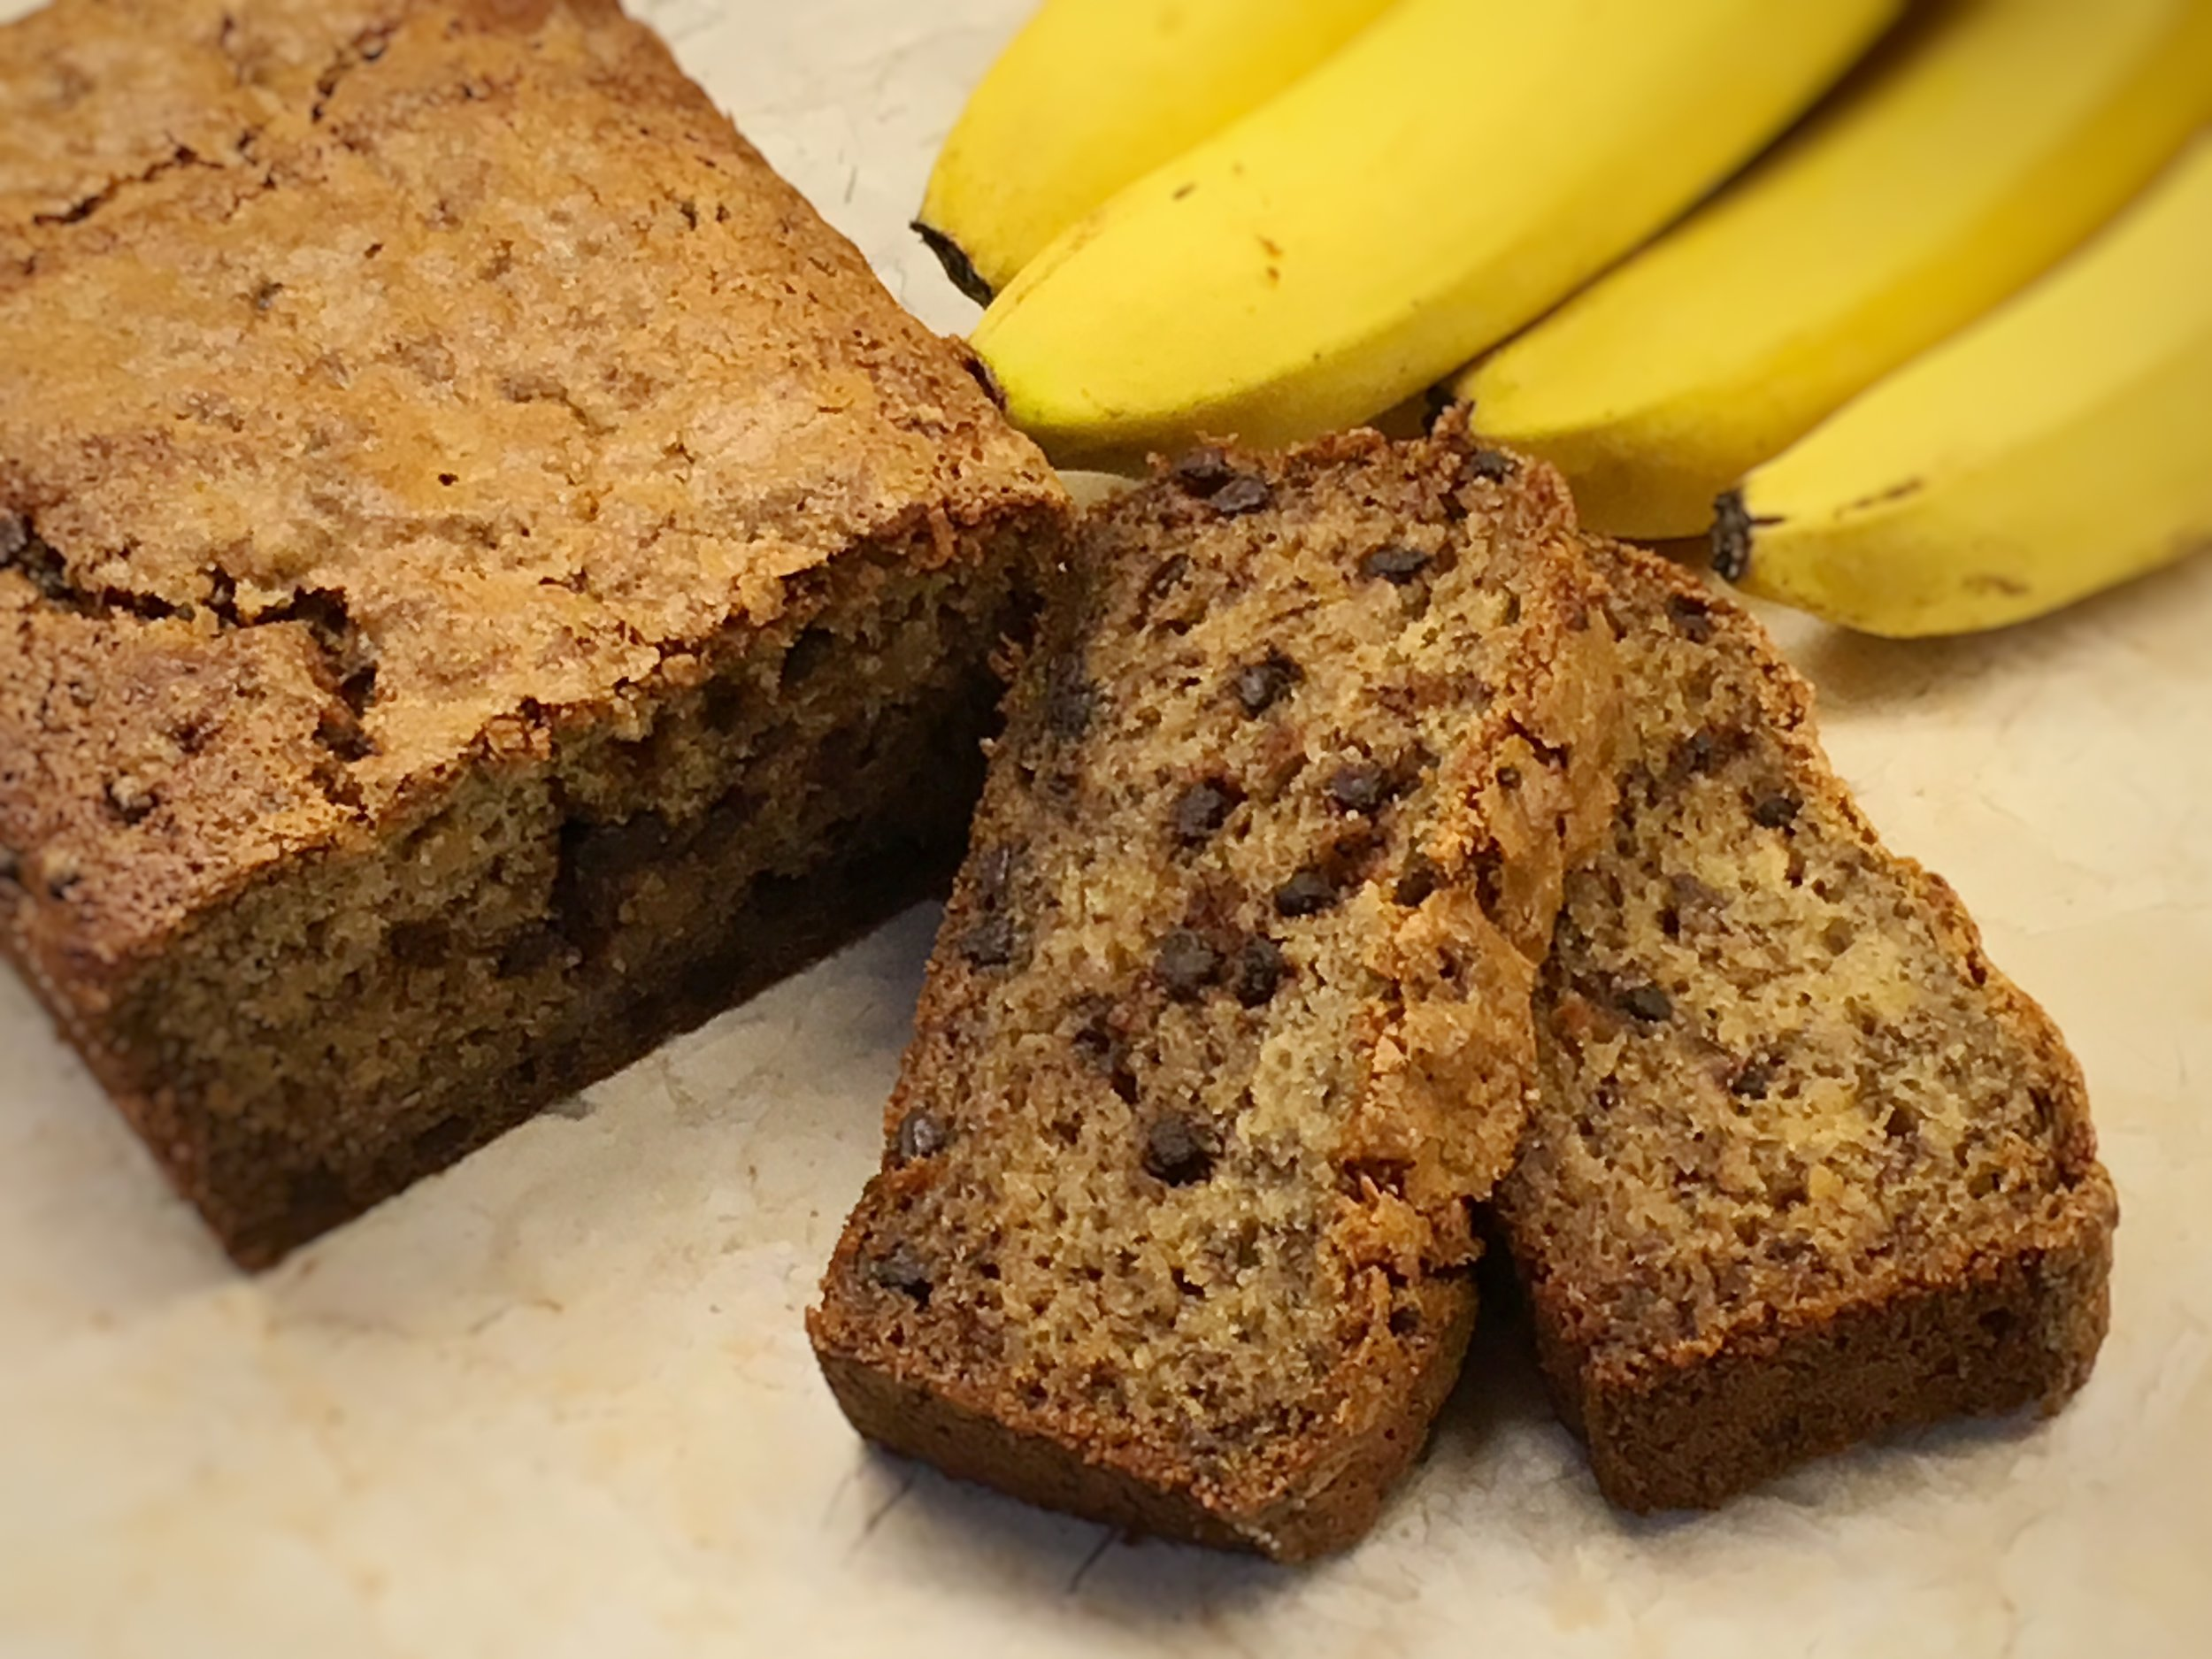 BANANA BREAD : Delicious, moist banana bread with chocolate chips, walnuts or both. Dairy-free.